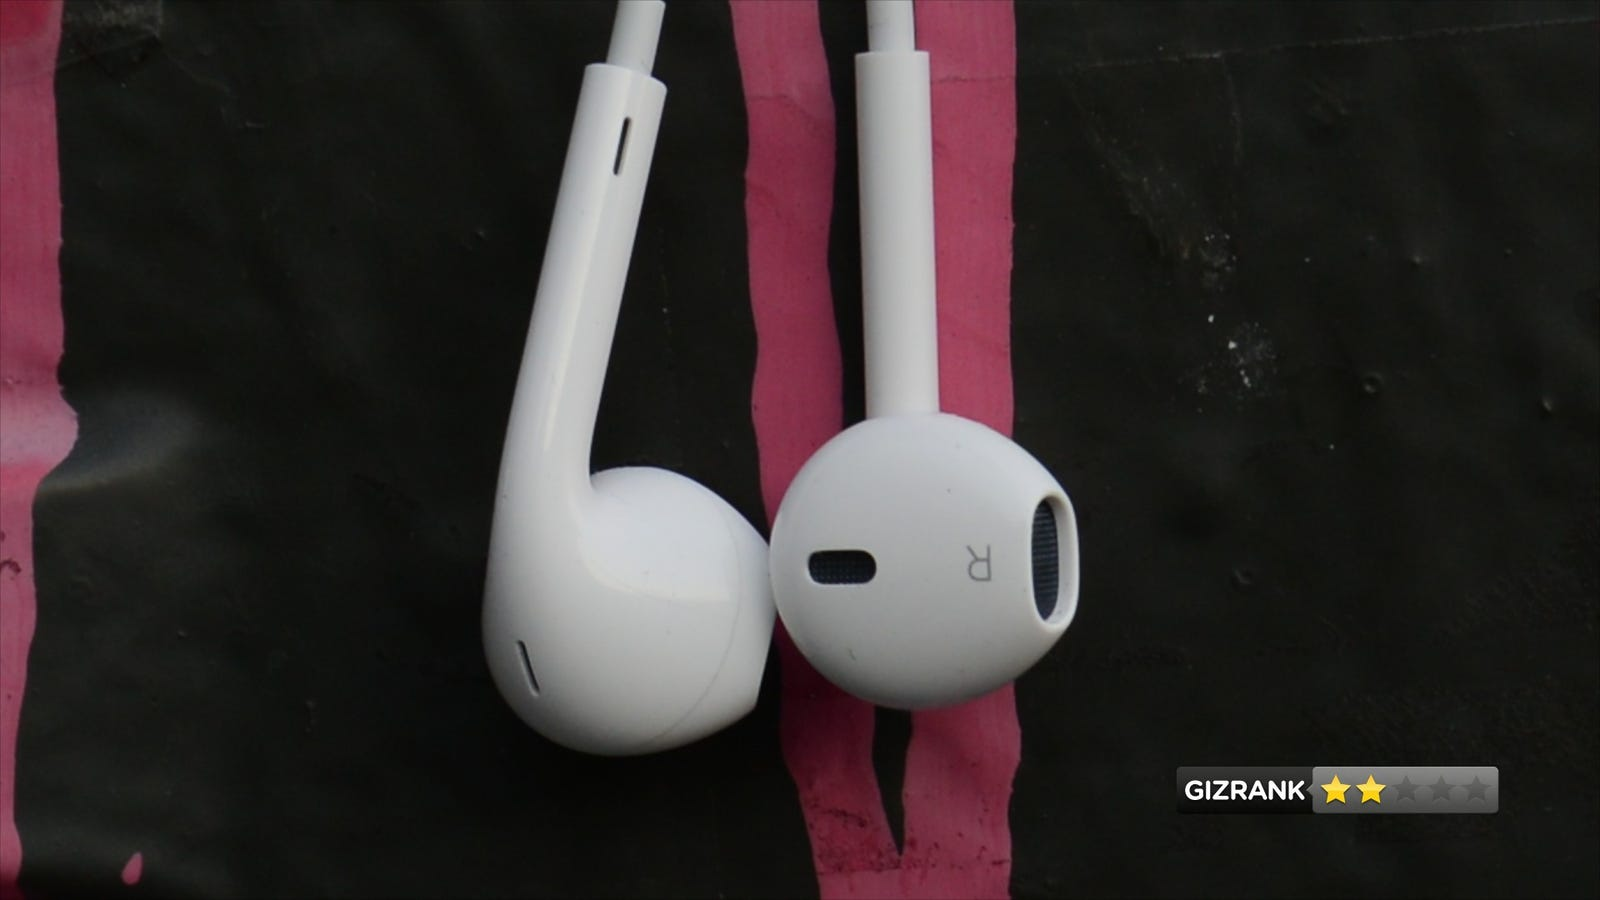 neckband earbuds rose gold - Apple EarPods Review: Better! (But Still Garbage)